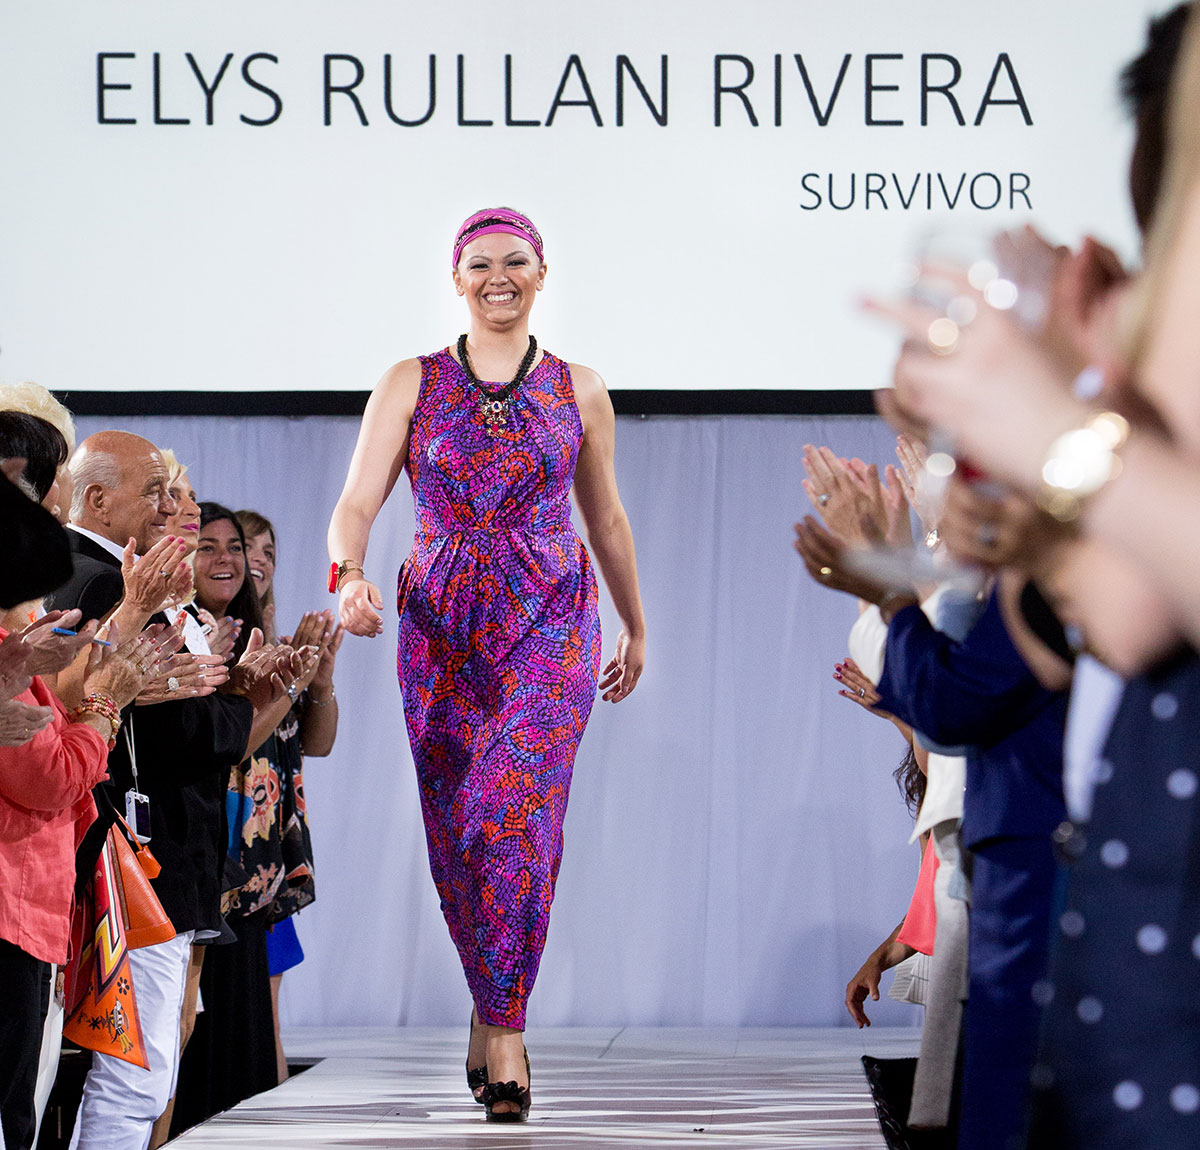 elys walks the runway. photo by fournier & malloy photographers